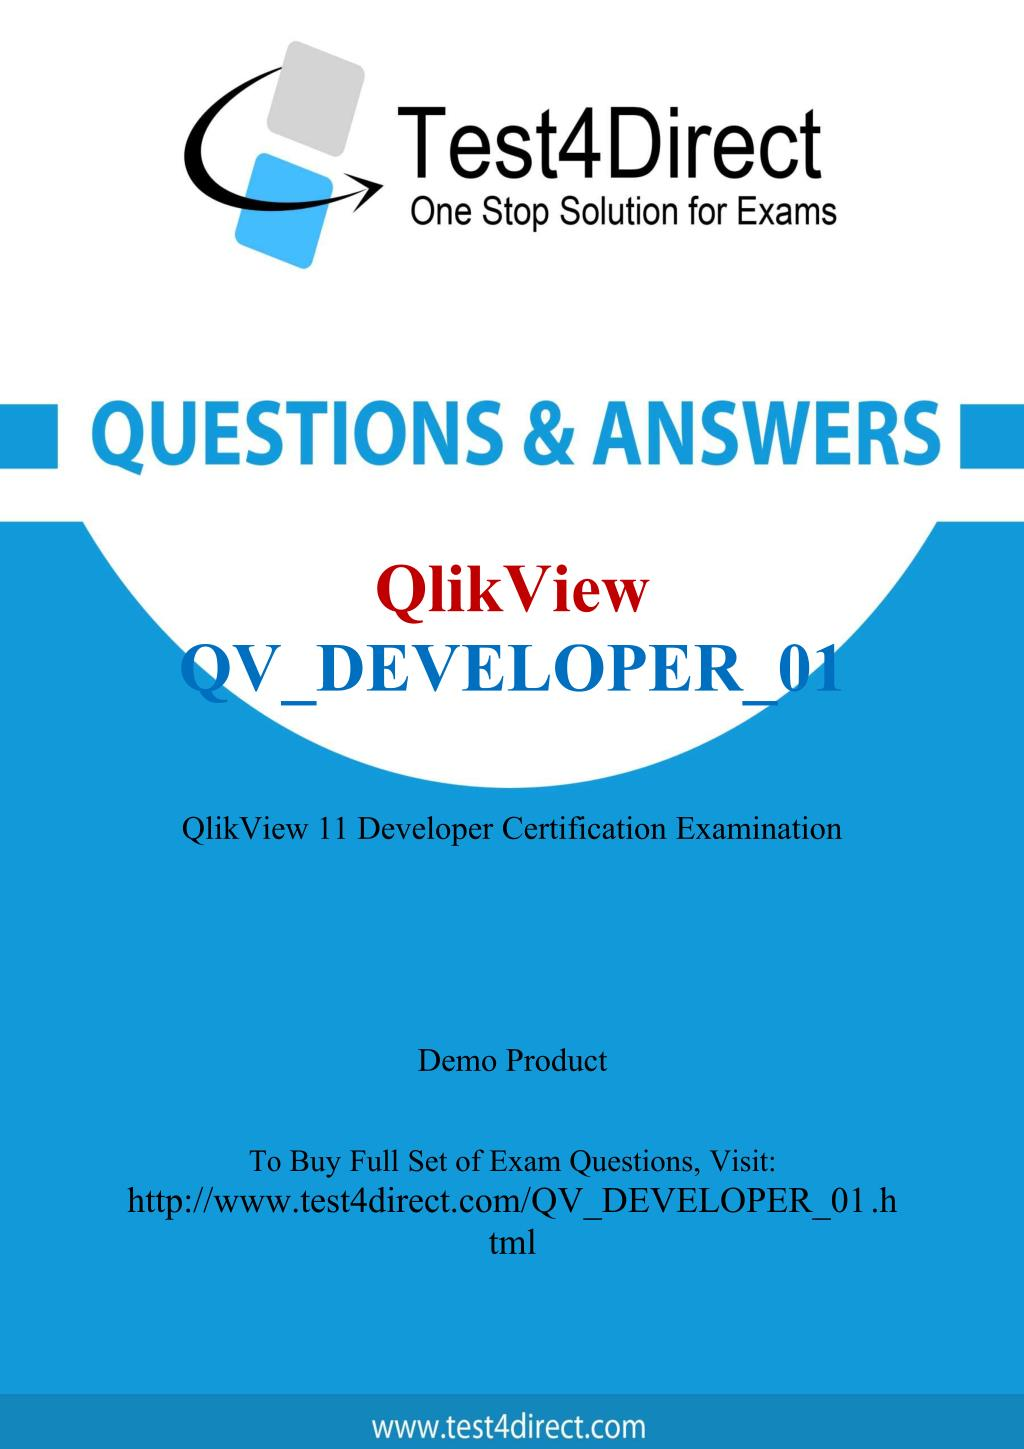 Ppt Qlikview Qvdeveloper01 Real Exam Questions Powerpoint